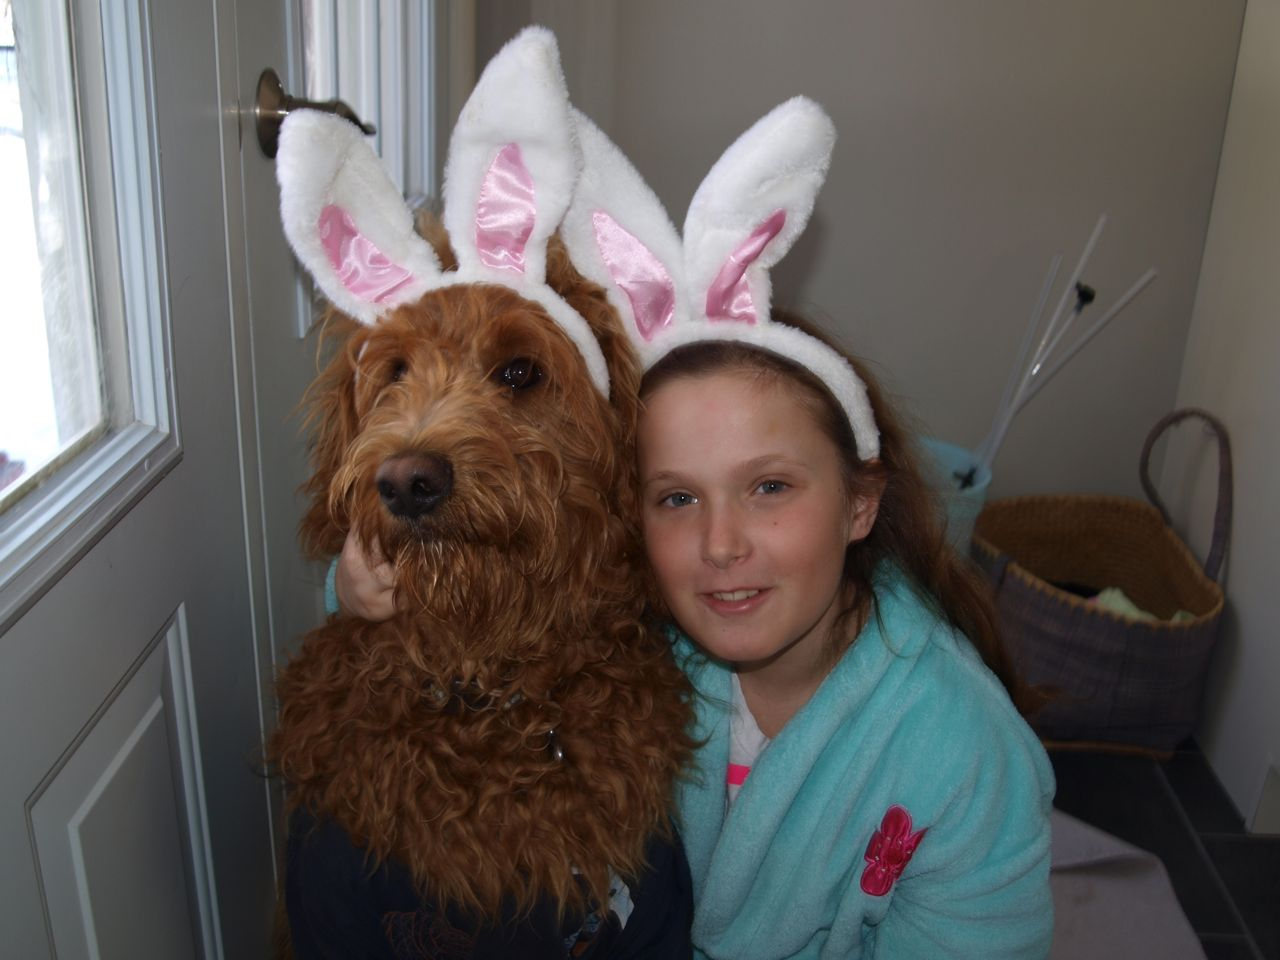 easter fun for teens and tweens, dog in rabbit ears